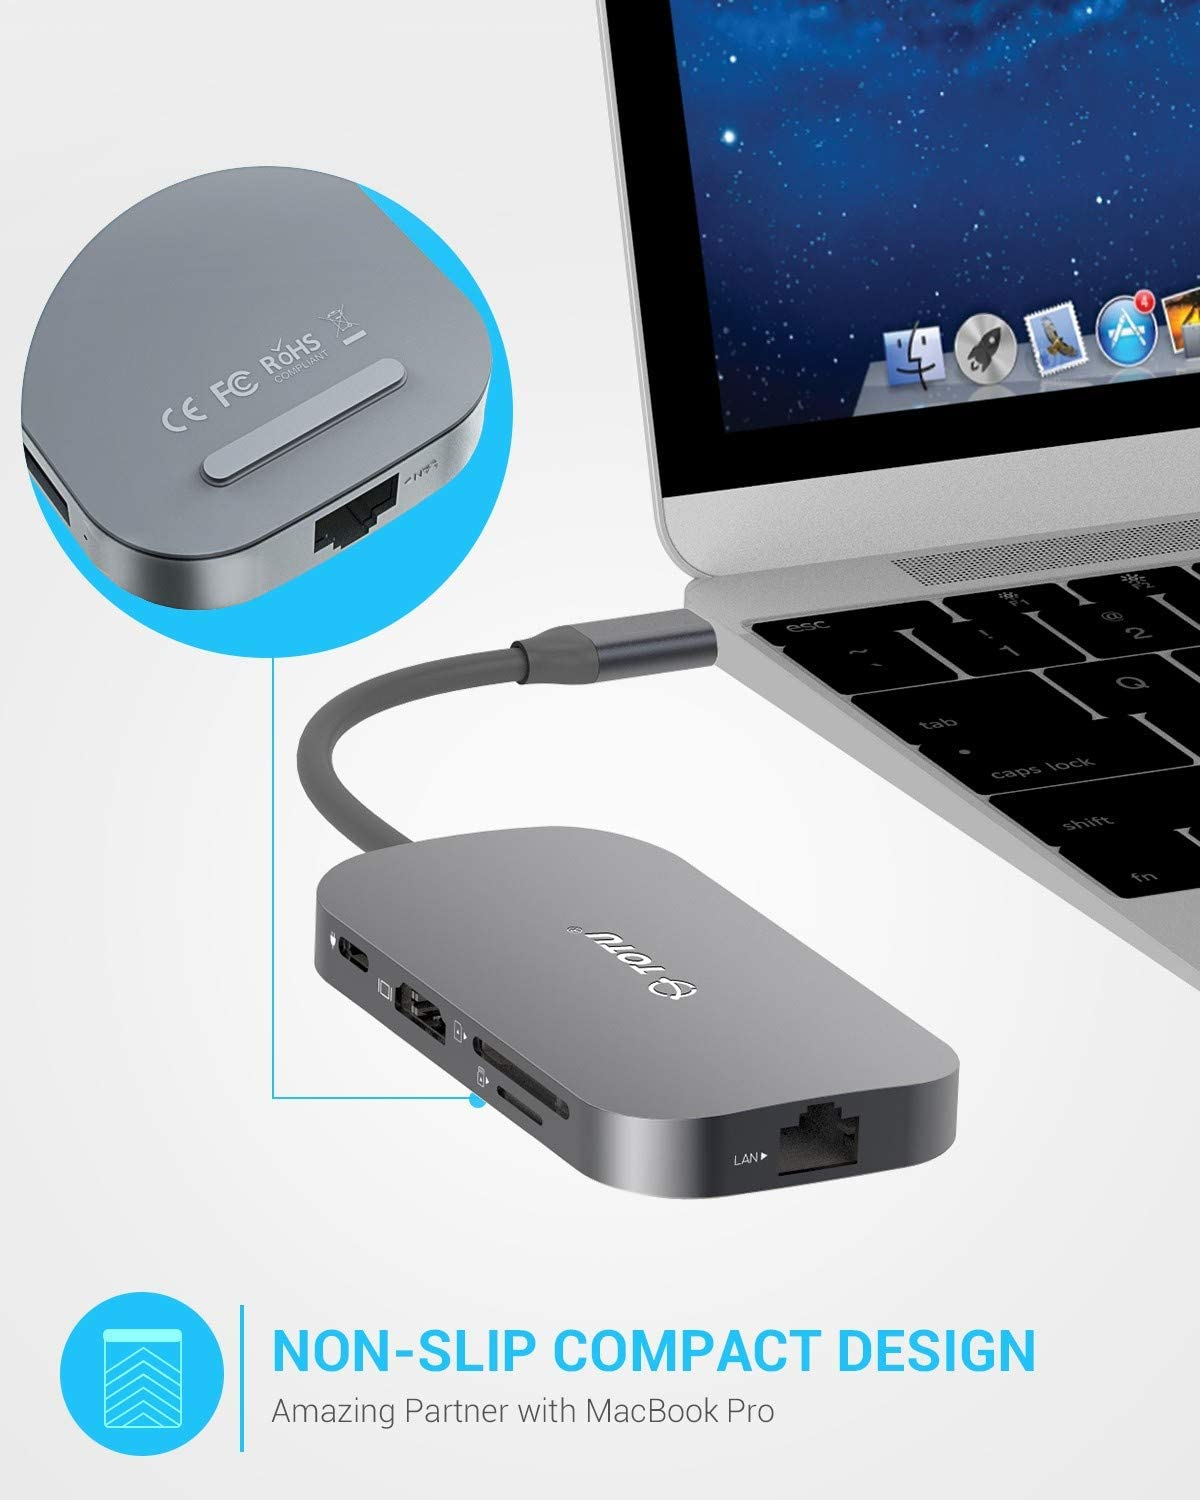 TOTU USB C Hub,9-In-1 Type C Hub with Ethernet Port, 4K USB C to HDMI, 2 USB 3.0 Ports, 1 USB 2.0 Port, SD/TF Card Reader, USB-C Power Delivery, Portable for Mac Pro and Other Type C Laptops (Silver): Computers & Accessories